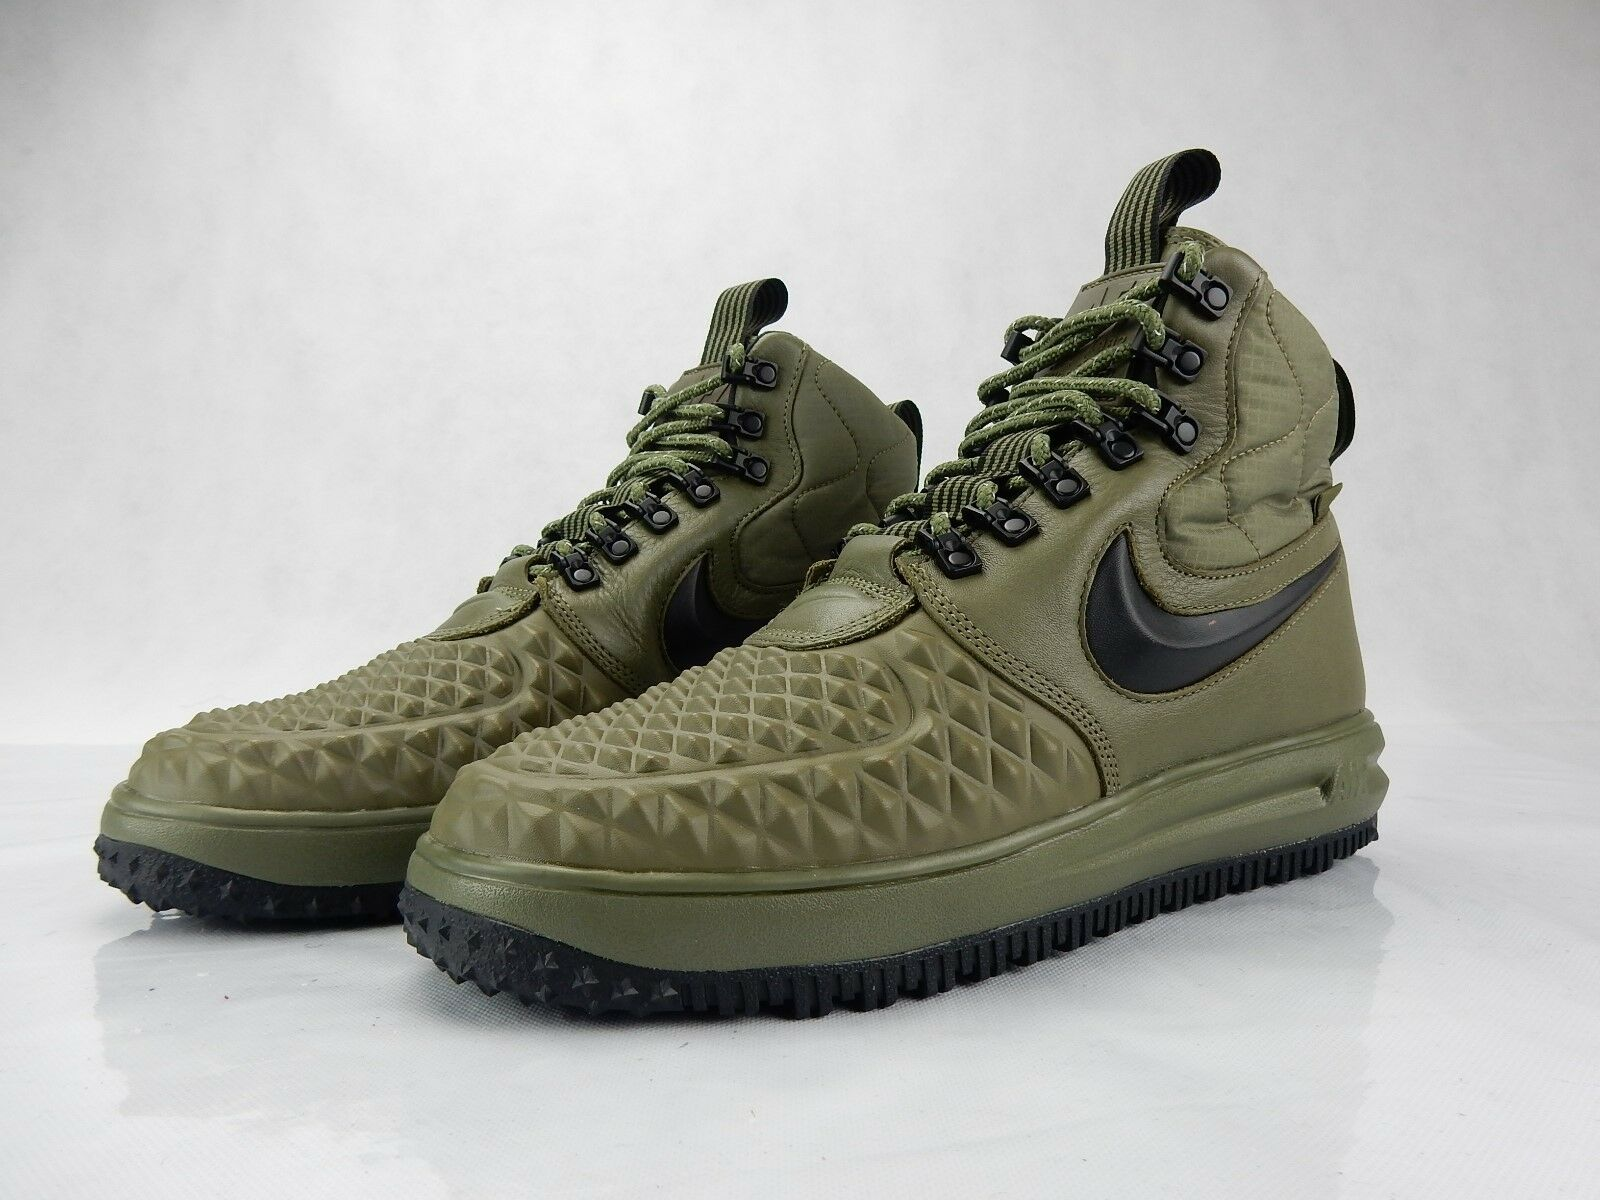 Nike Air Lunar Force 1 Duckboots 916682 202 S Size Shoes Olive Black Mens Size S 10 2f7abc